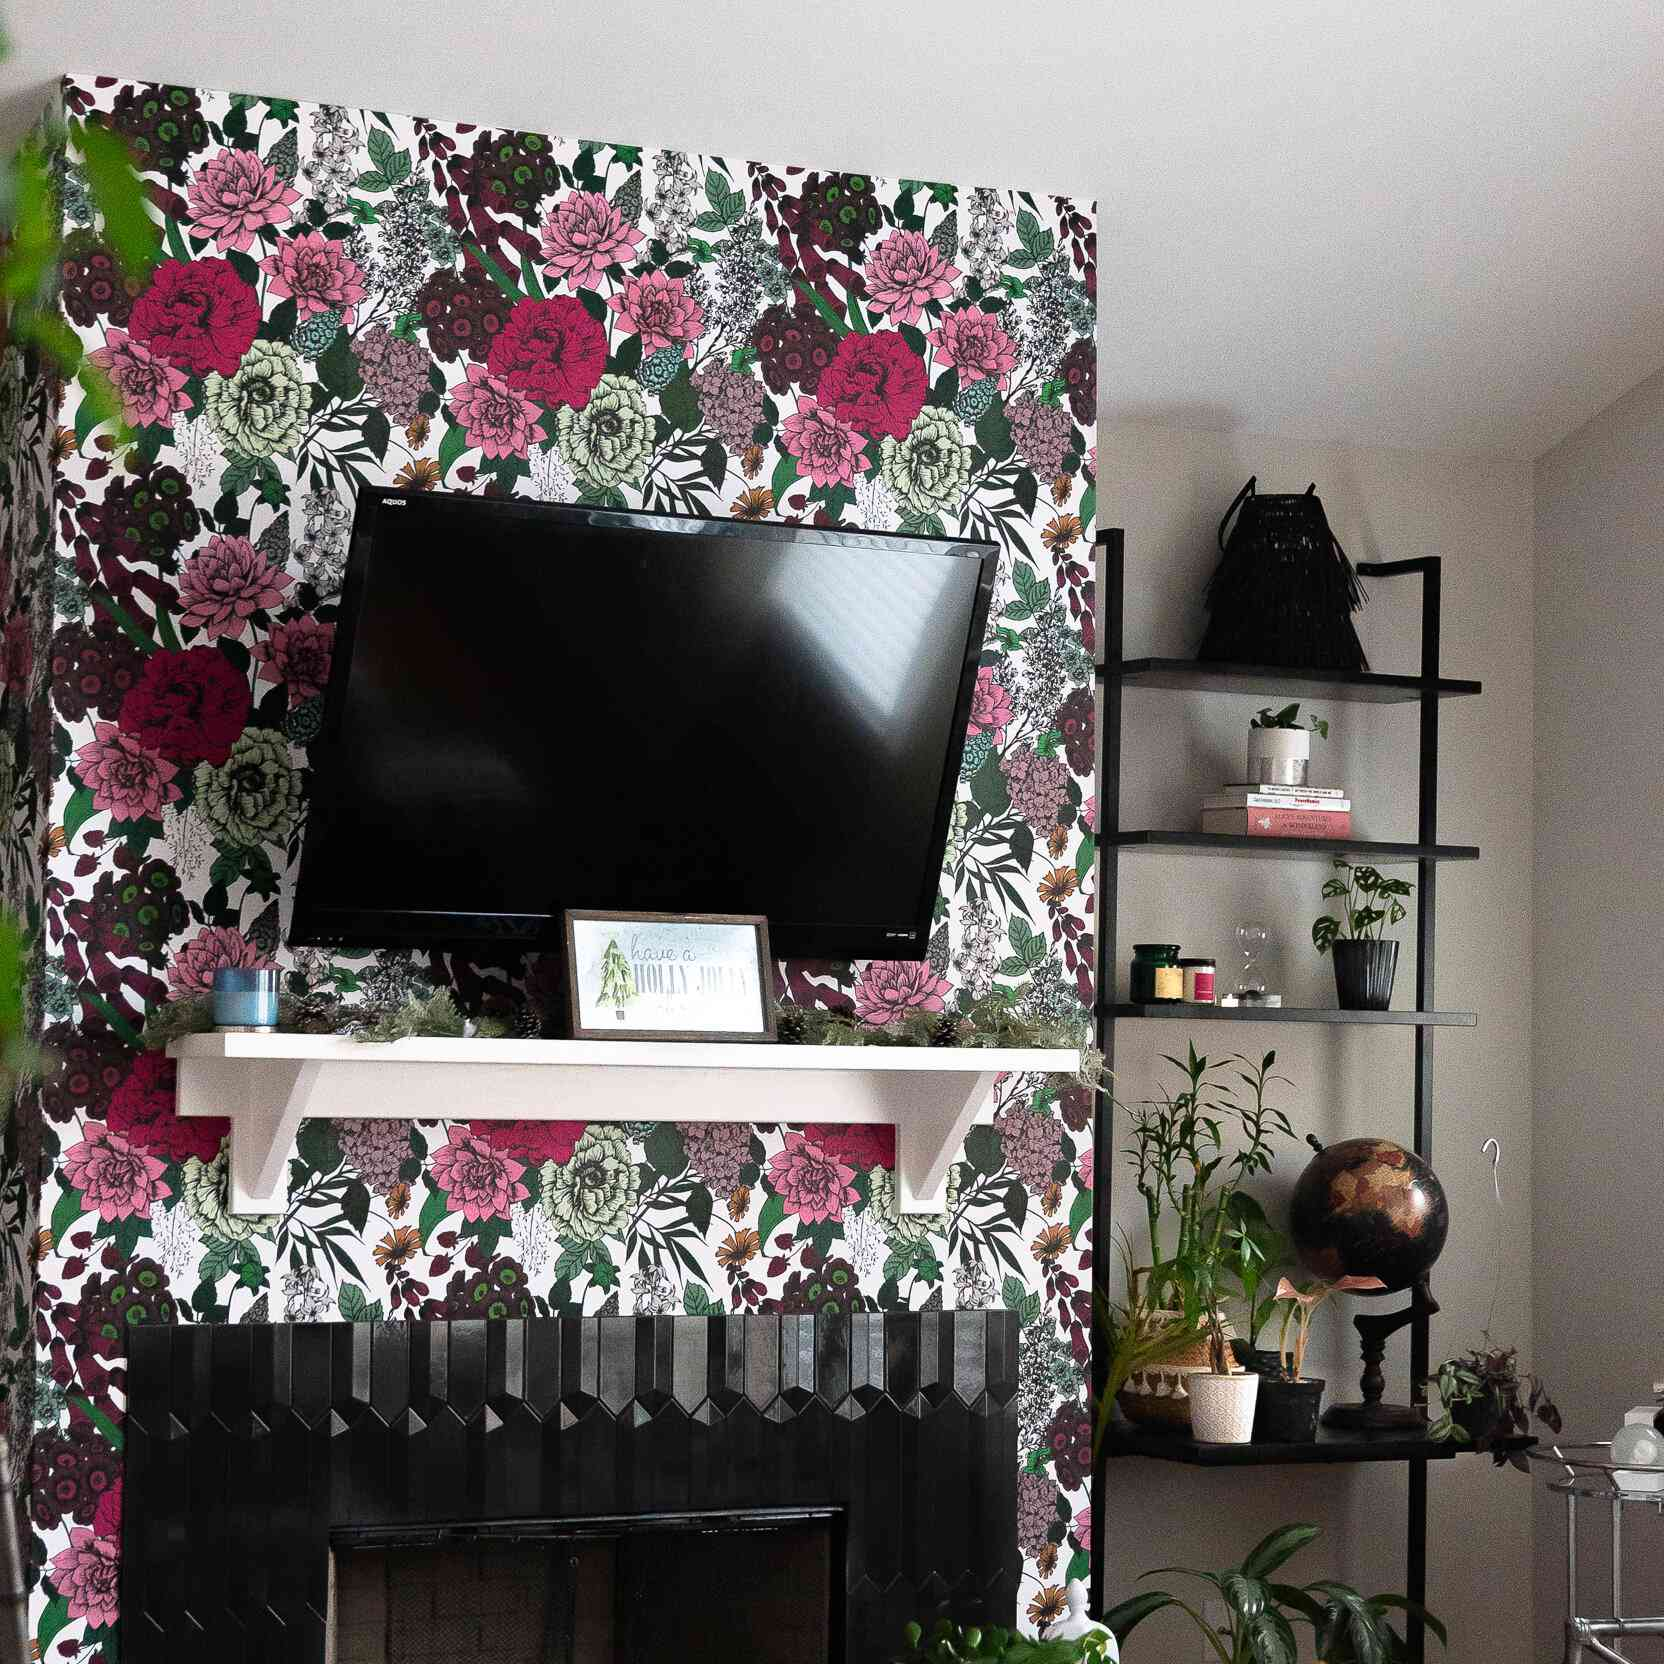 Modern fireplace wall with graphic wallpaper and geometric tiles